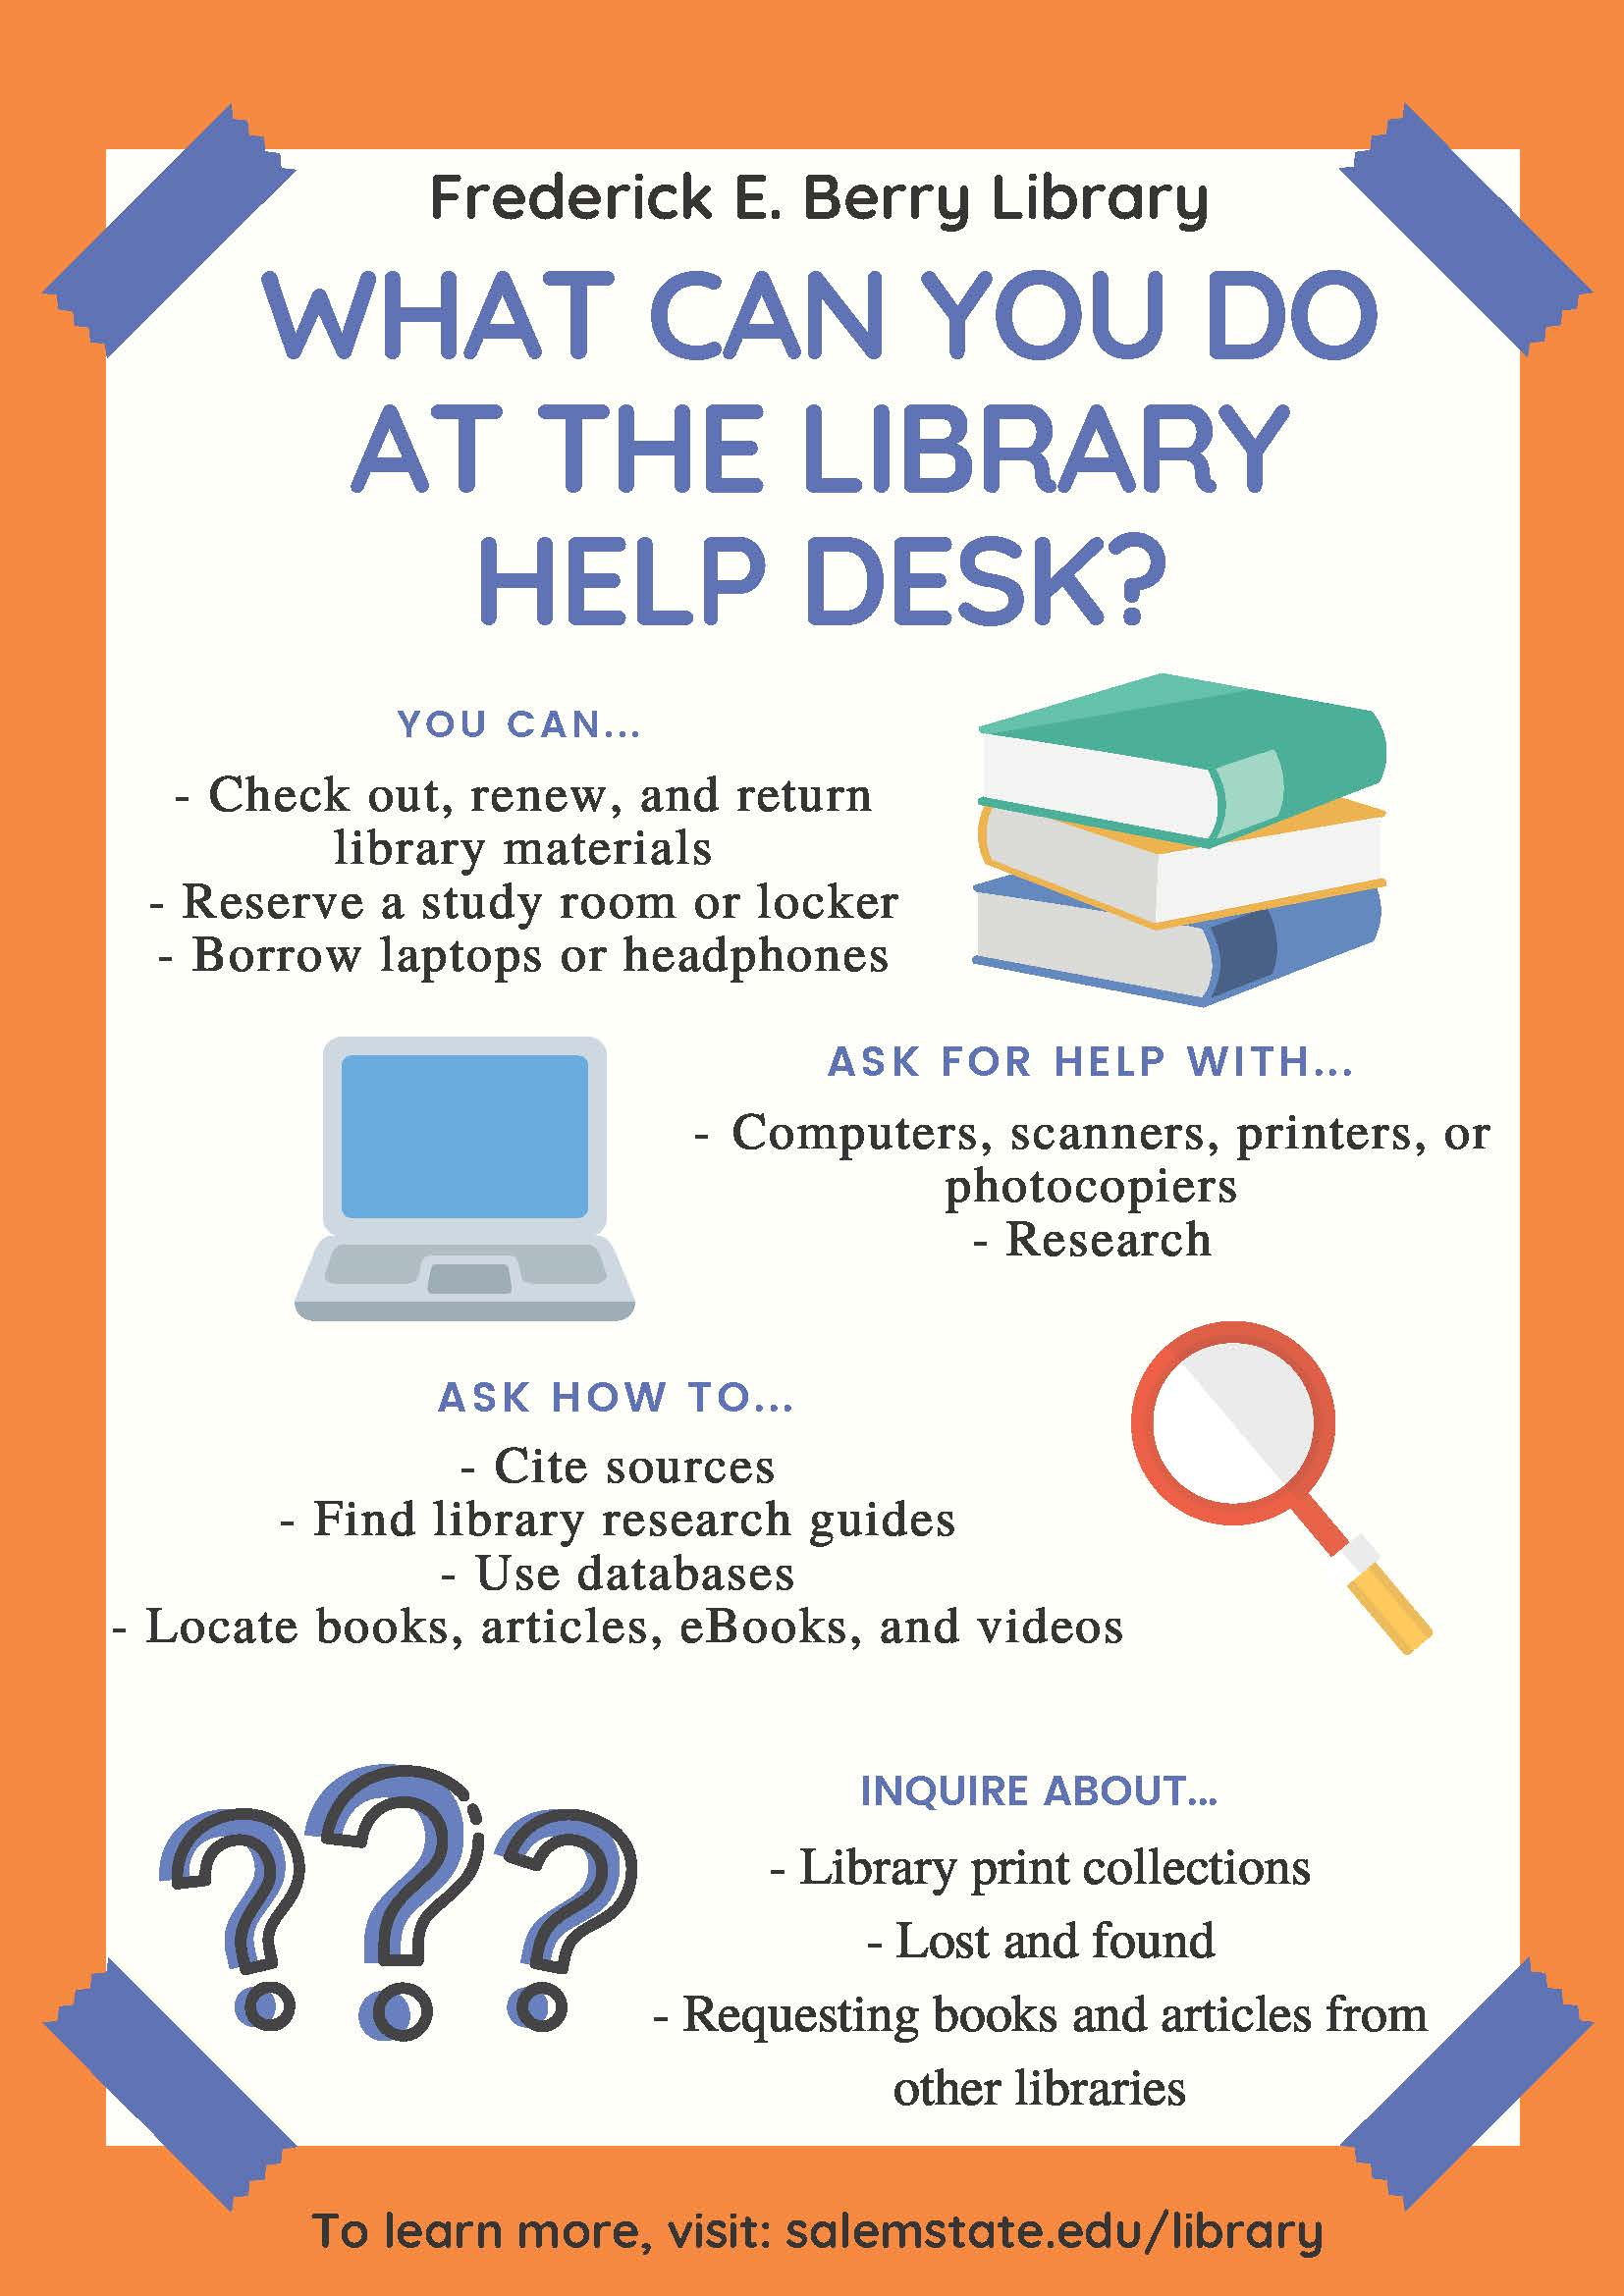 What can you do at the Library Help Desk?